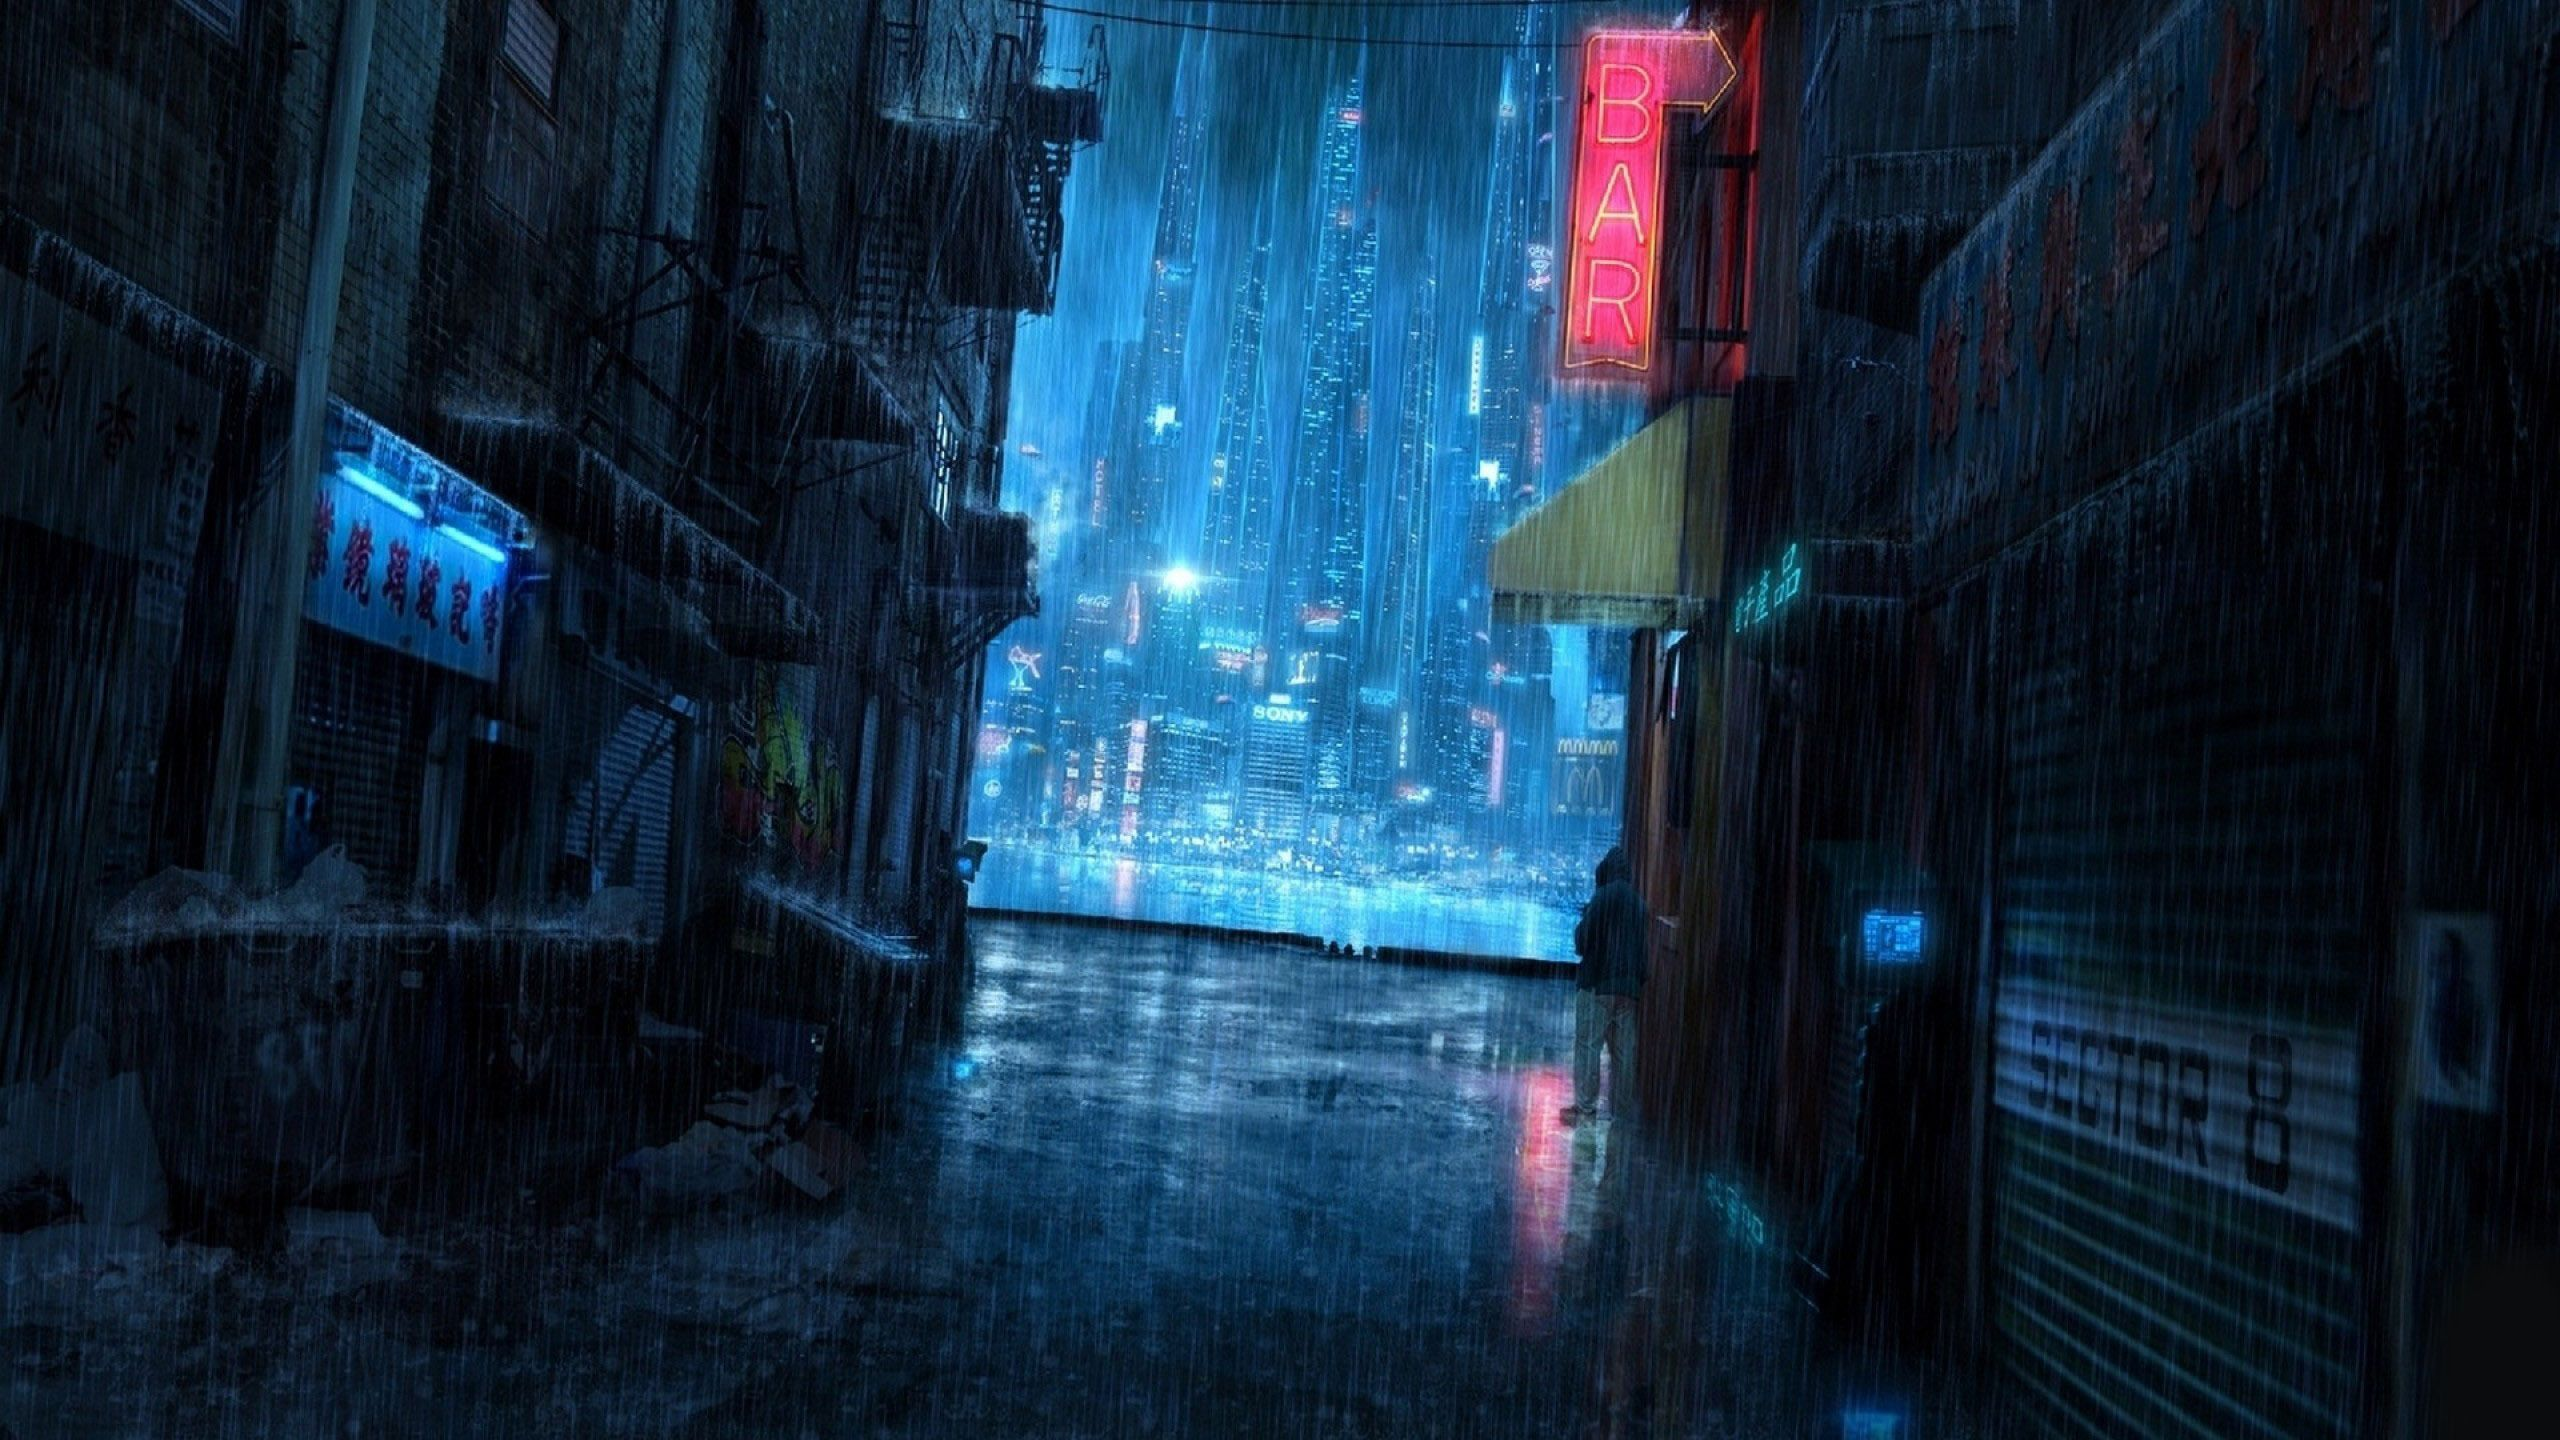 Cyberpunk 2077 Street With Images Anime Scenery Wallpaper